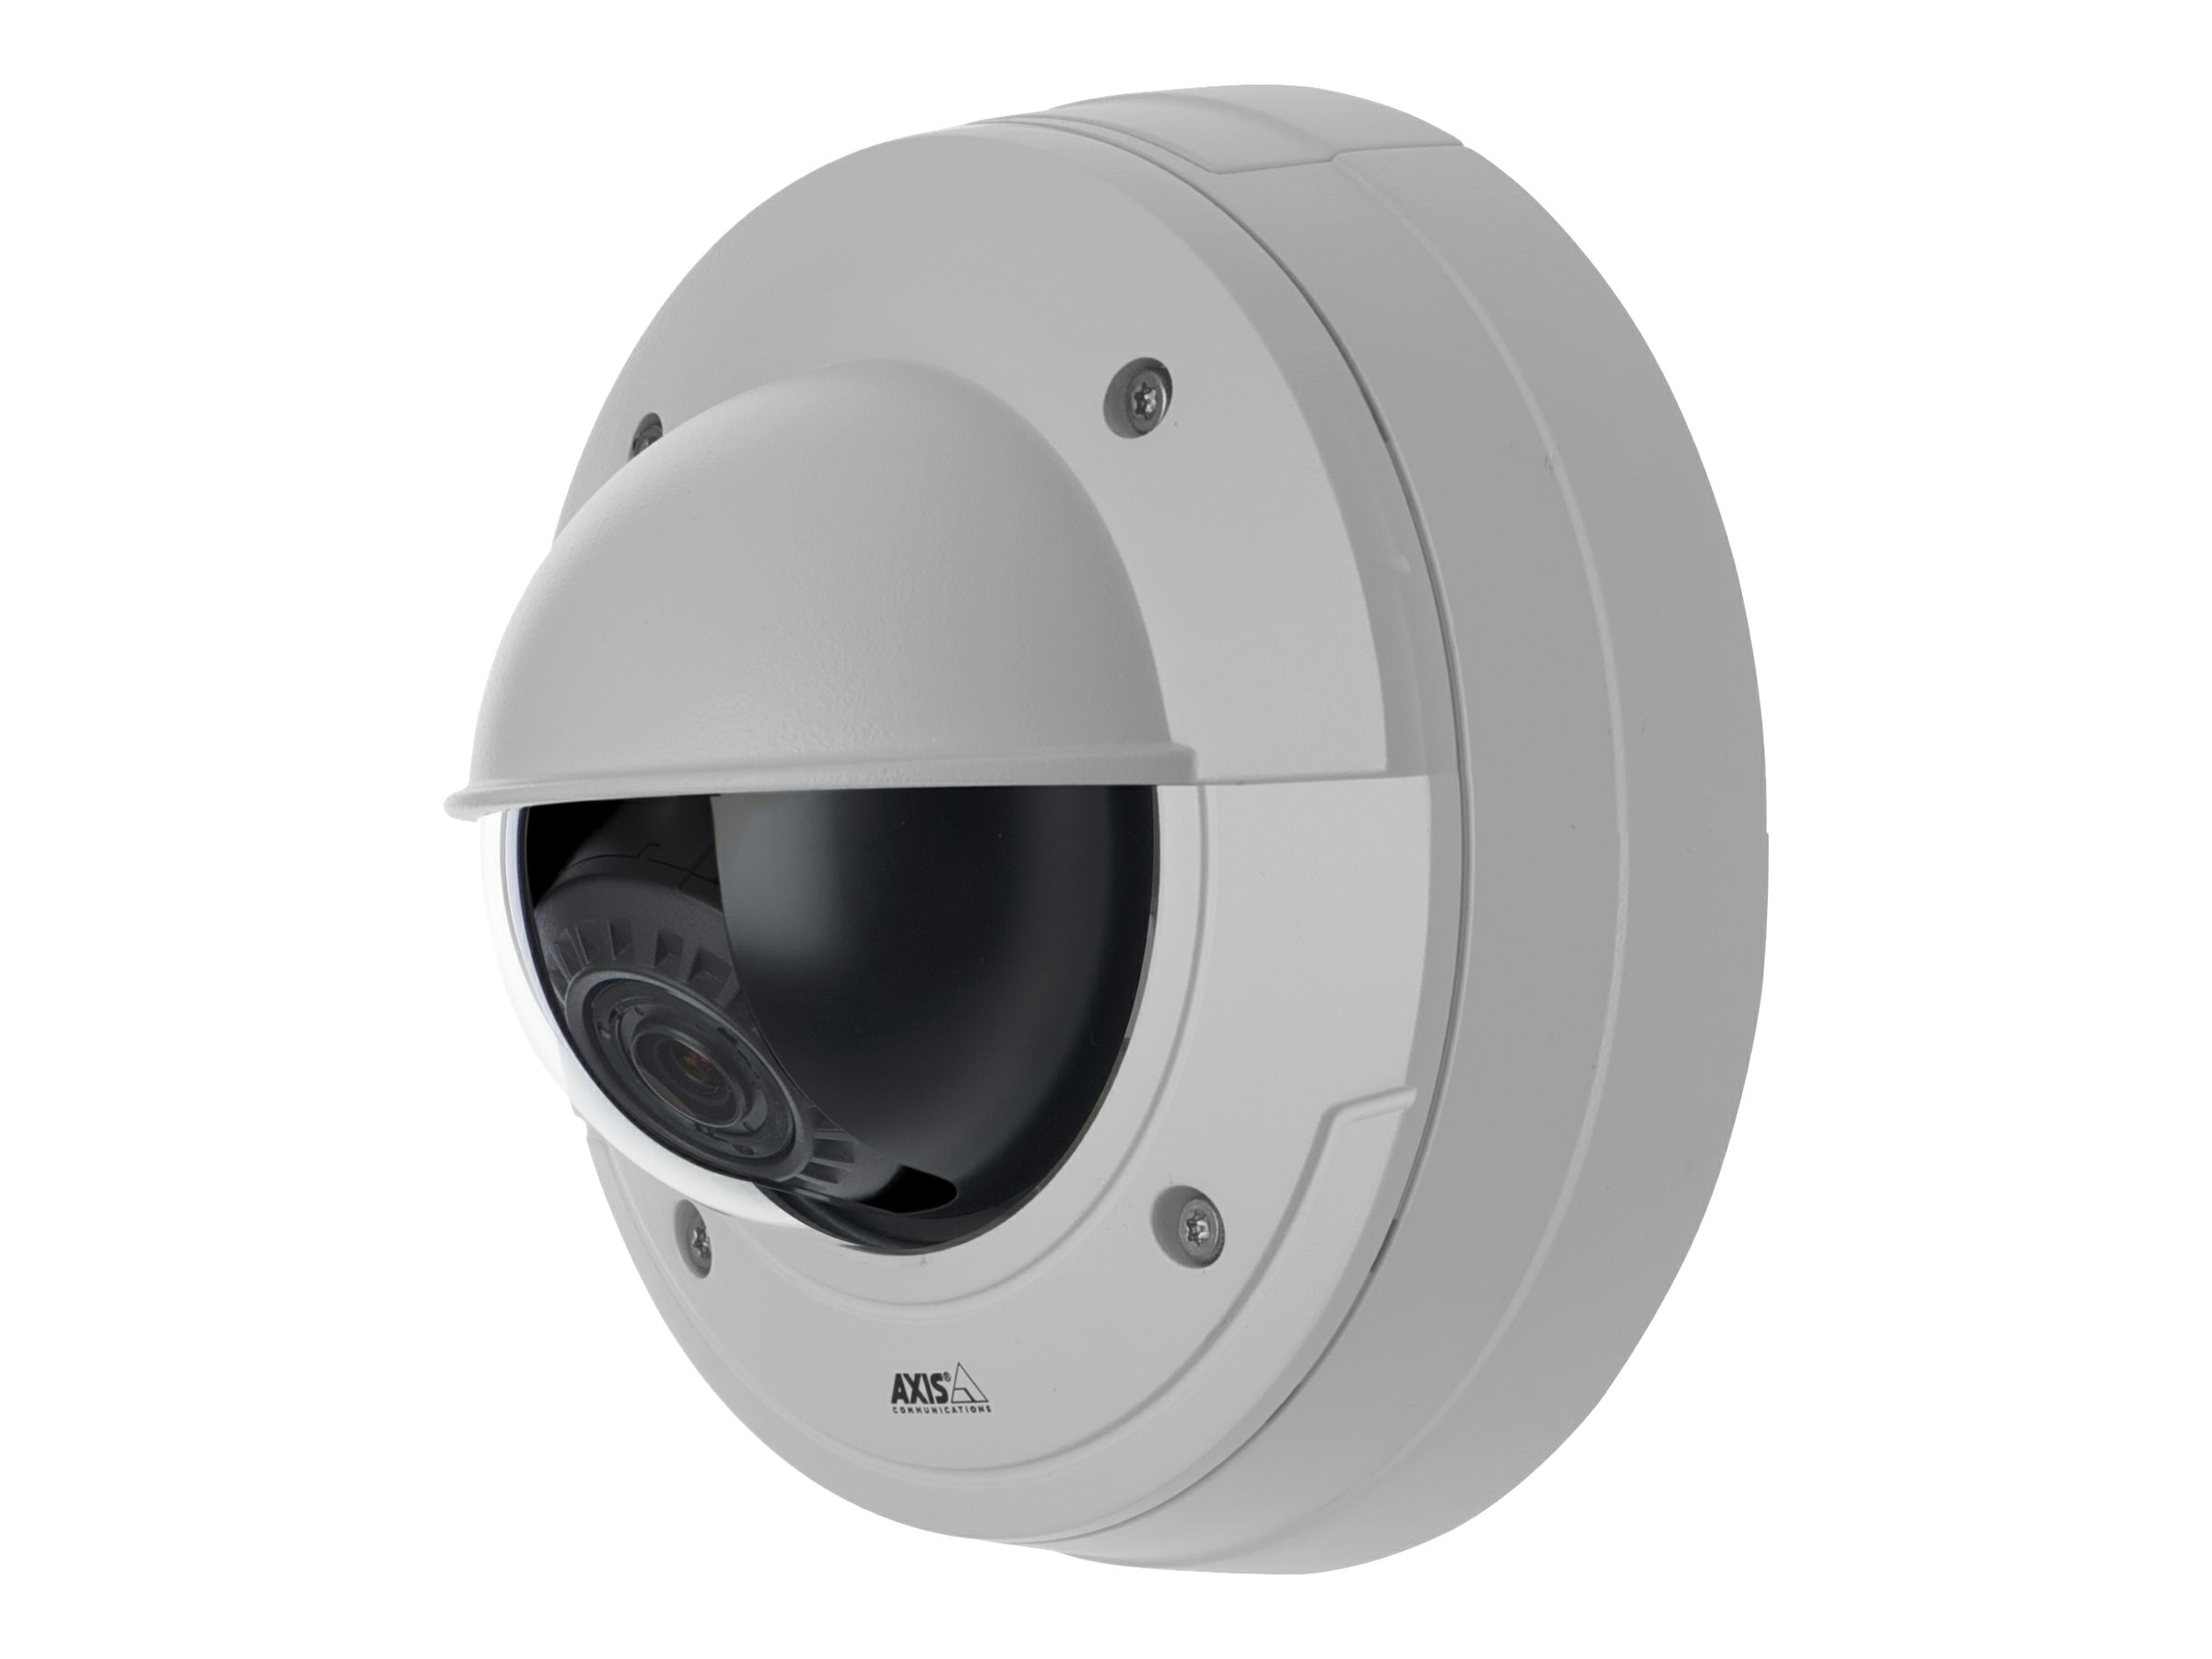 Mediatech P3364-VE Vandal-Resistant Network Camera